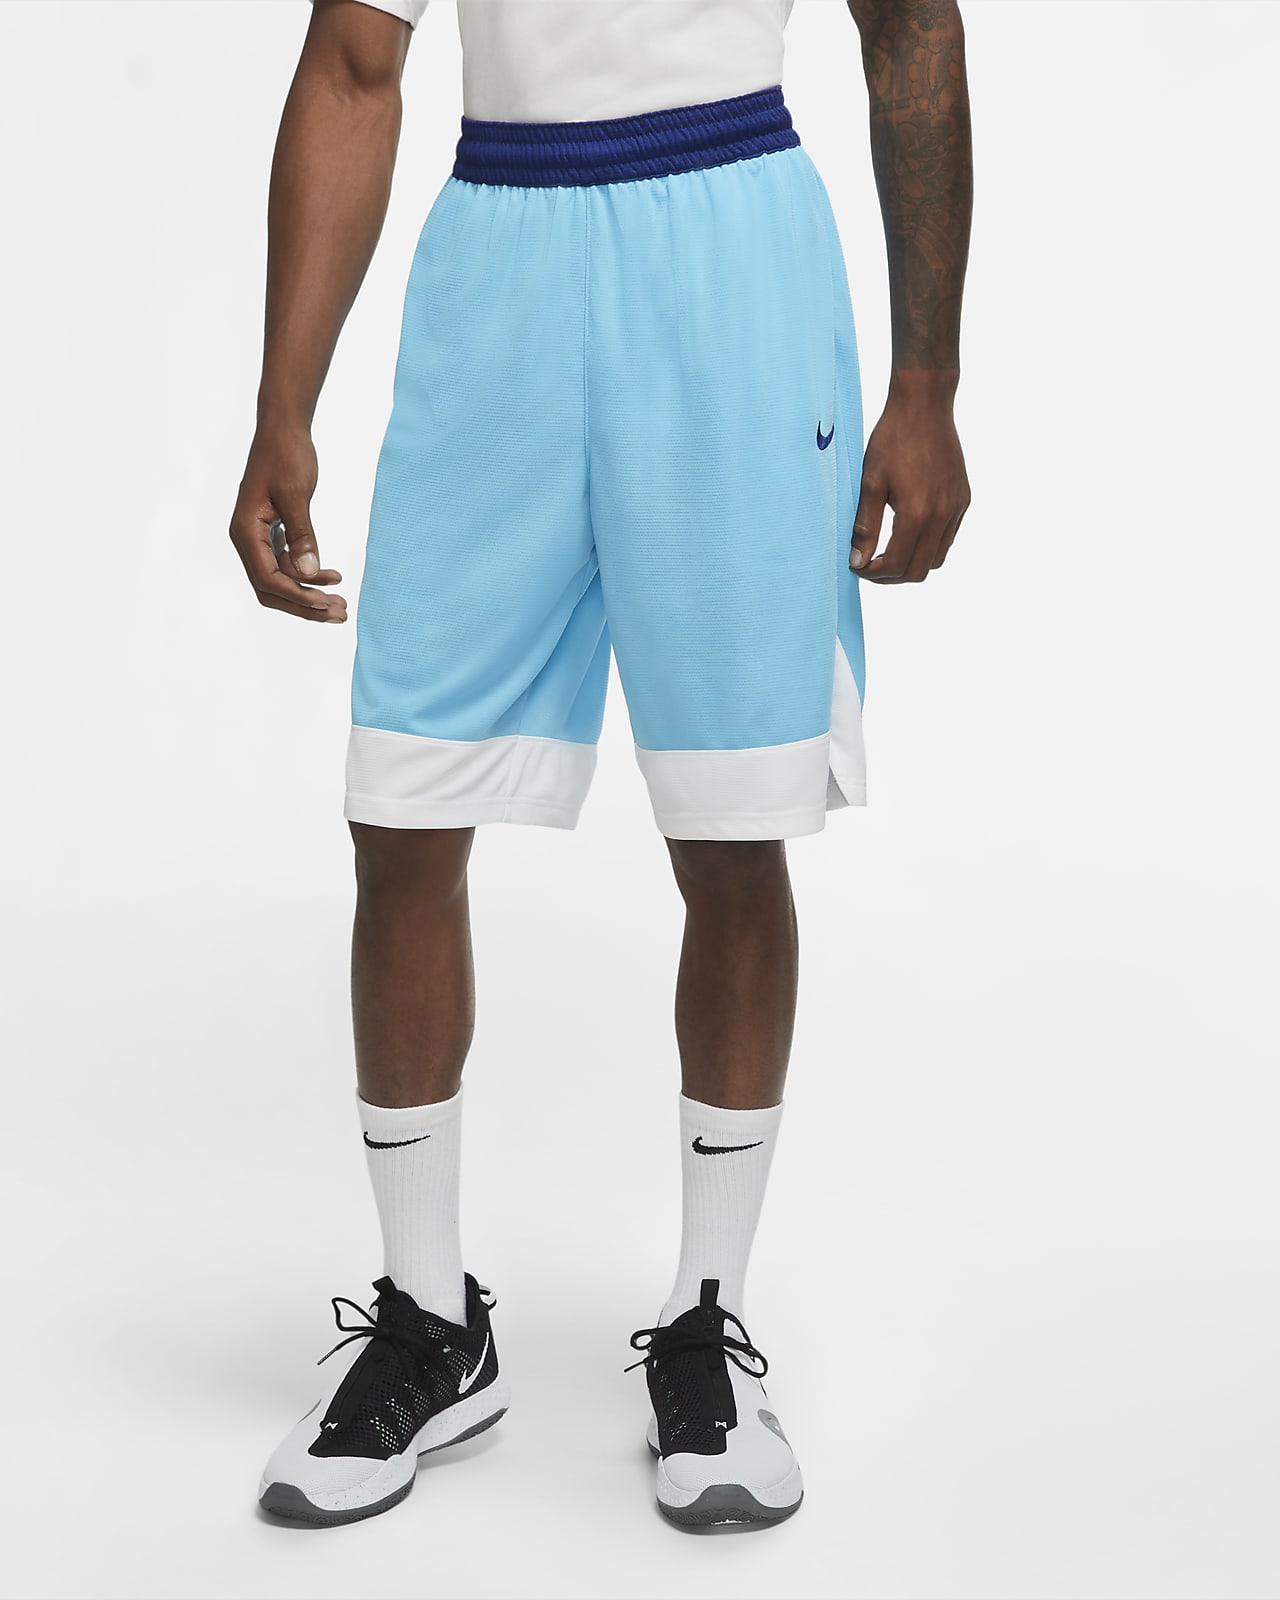 Nike Dri-FIT Icon Men's Basketball Shorts